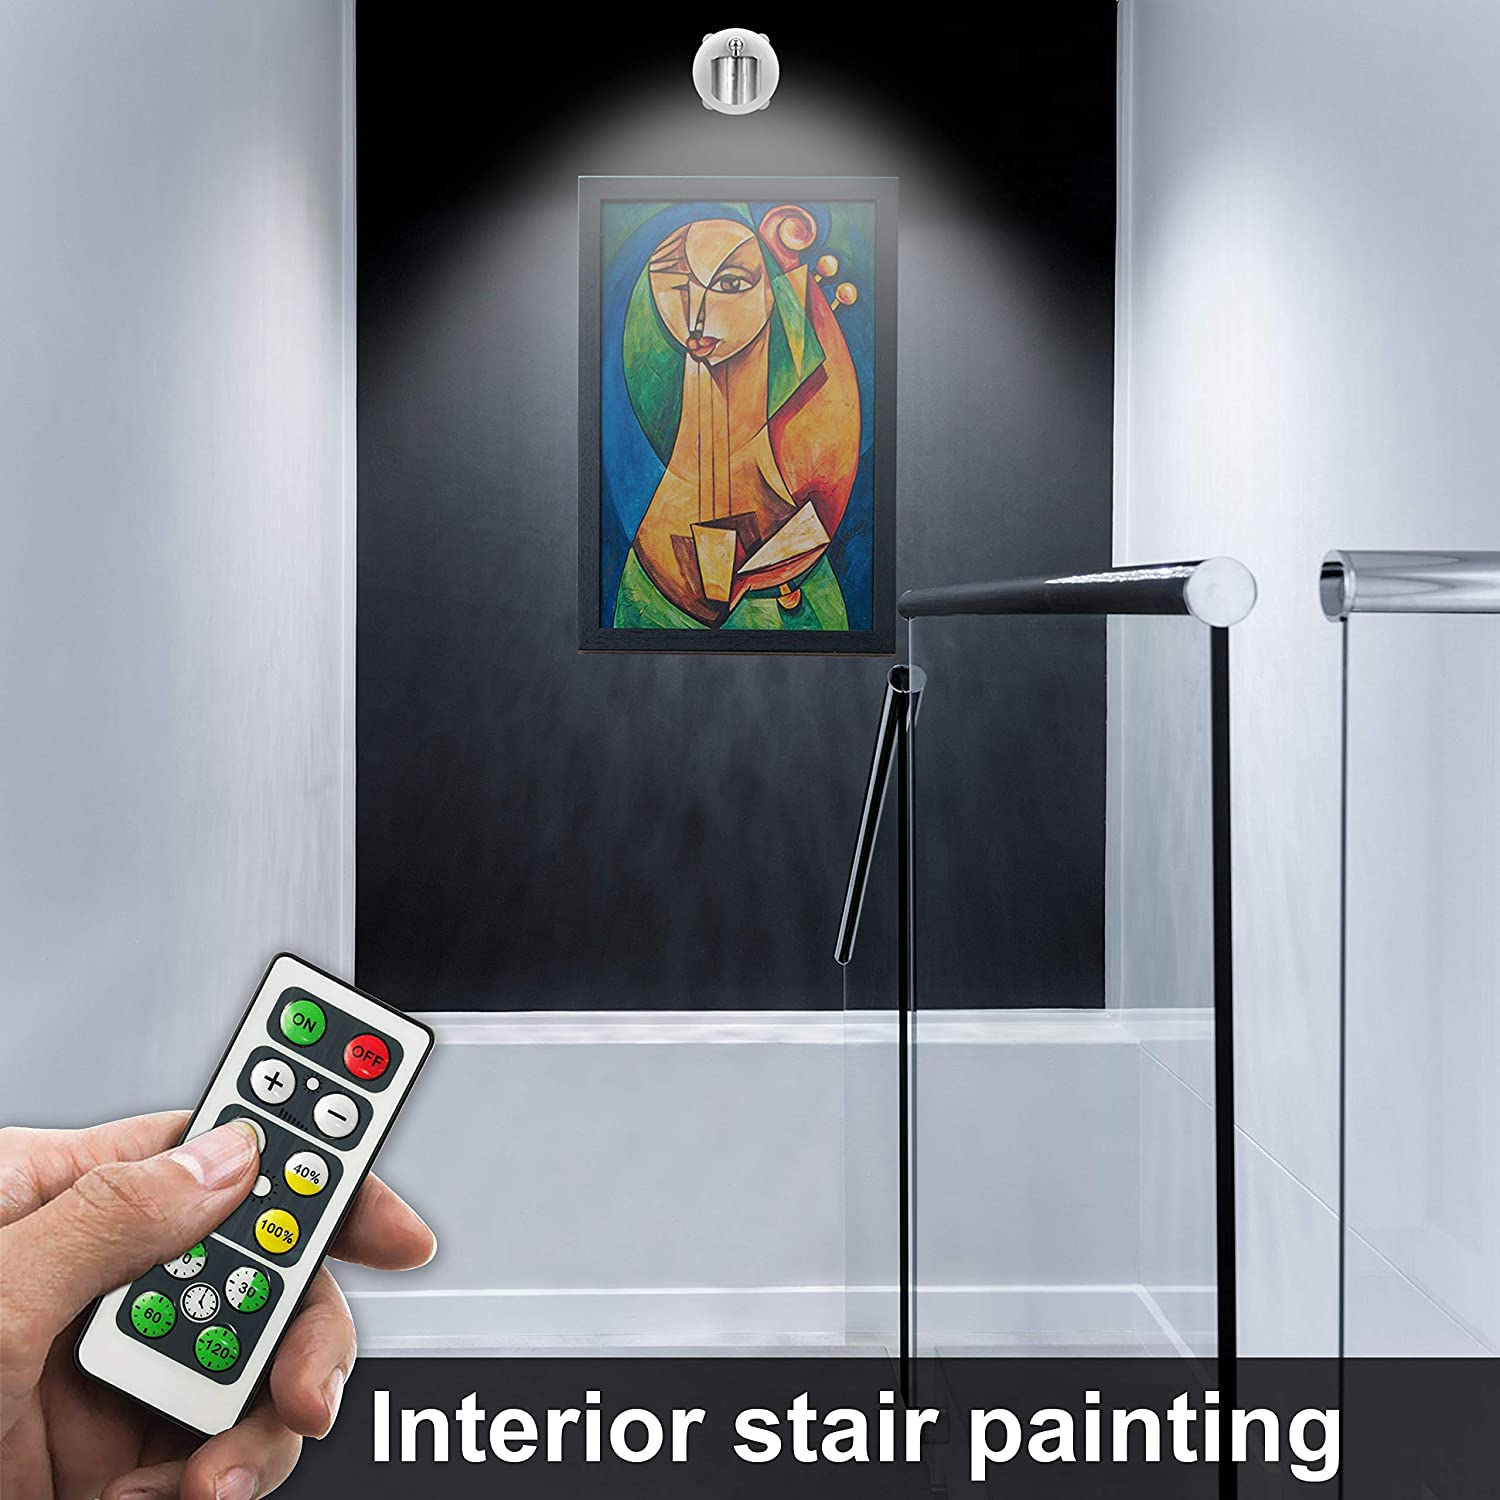 Battery Operated Accent Lights Art Lights for Paintings Mini Led Picture Light Puck Lights Wall Light 4000k Warm Light Wireless Spotlight Sliver 80 Lumens